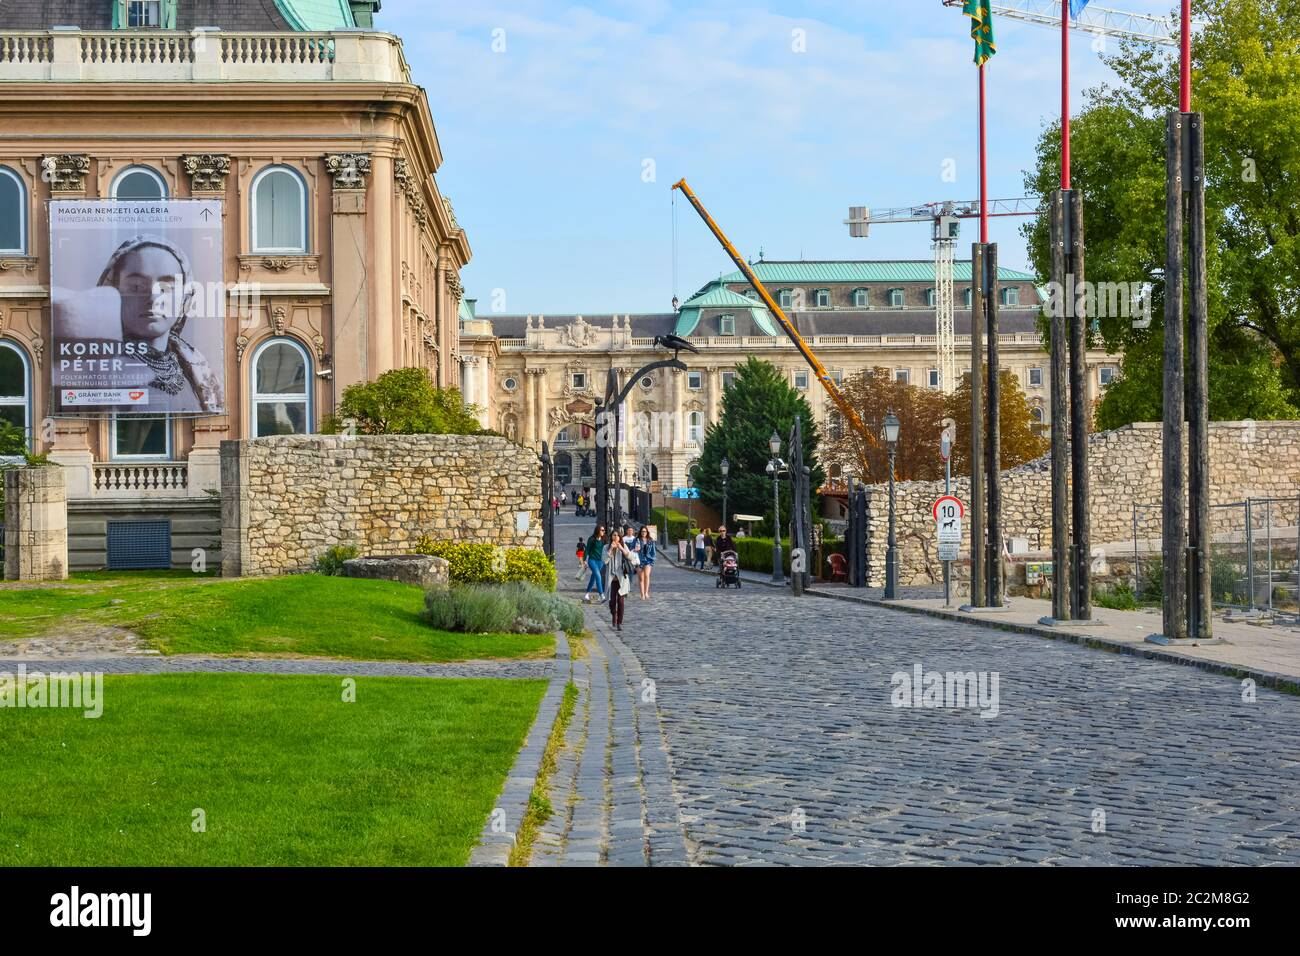 Tourists including several young women leave the Royal Palace museum and art exhibit, part of the Buda Castle Complex in Budapest, Hungary Stock Photo